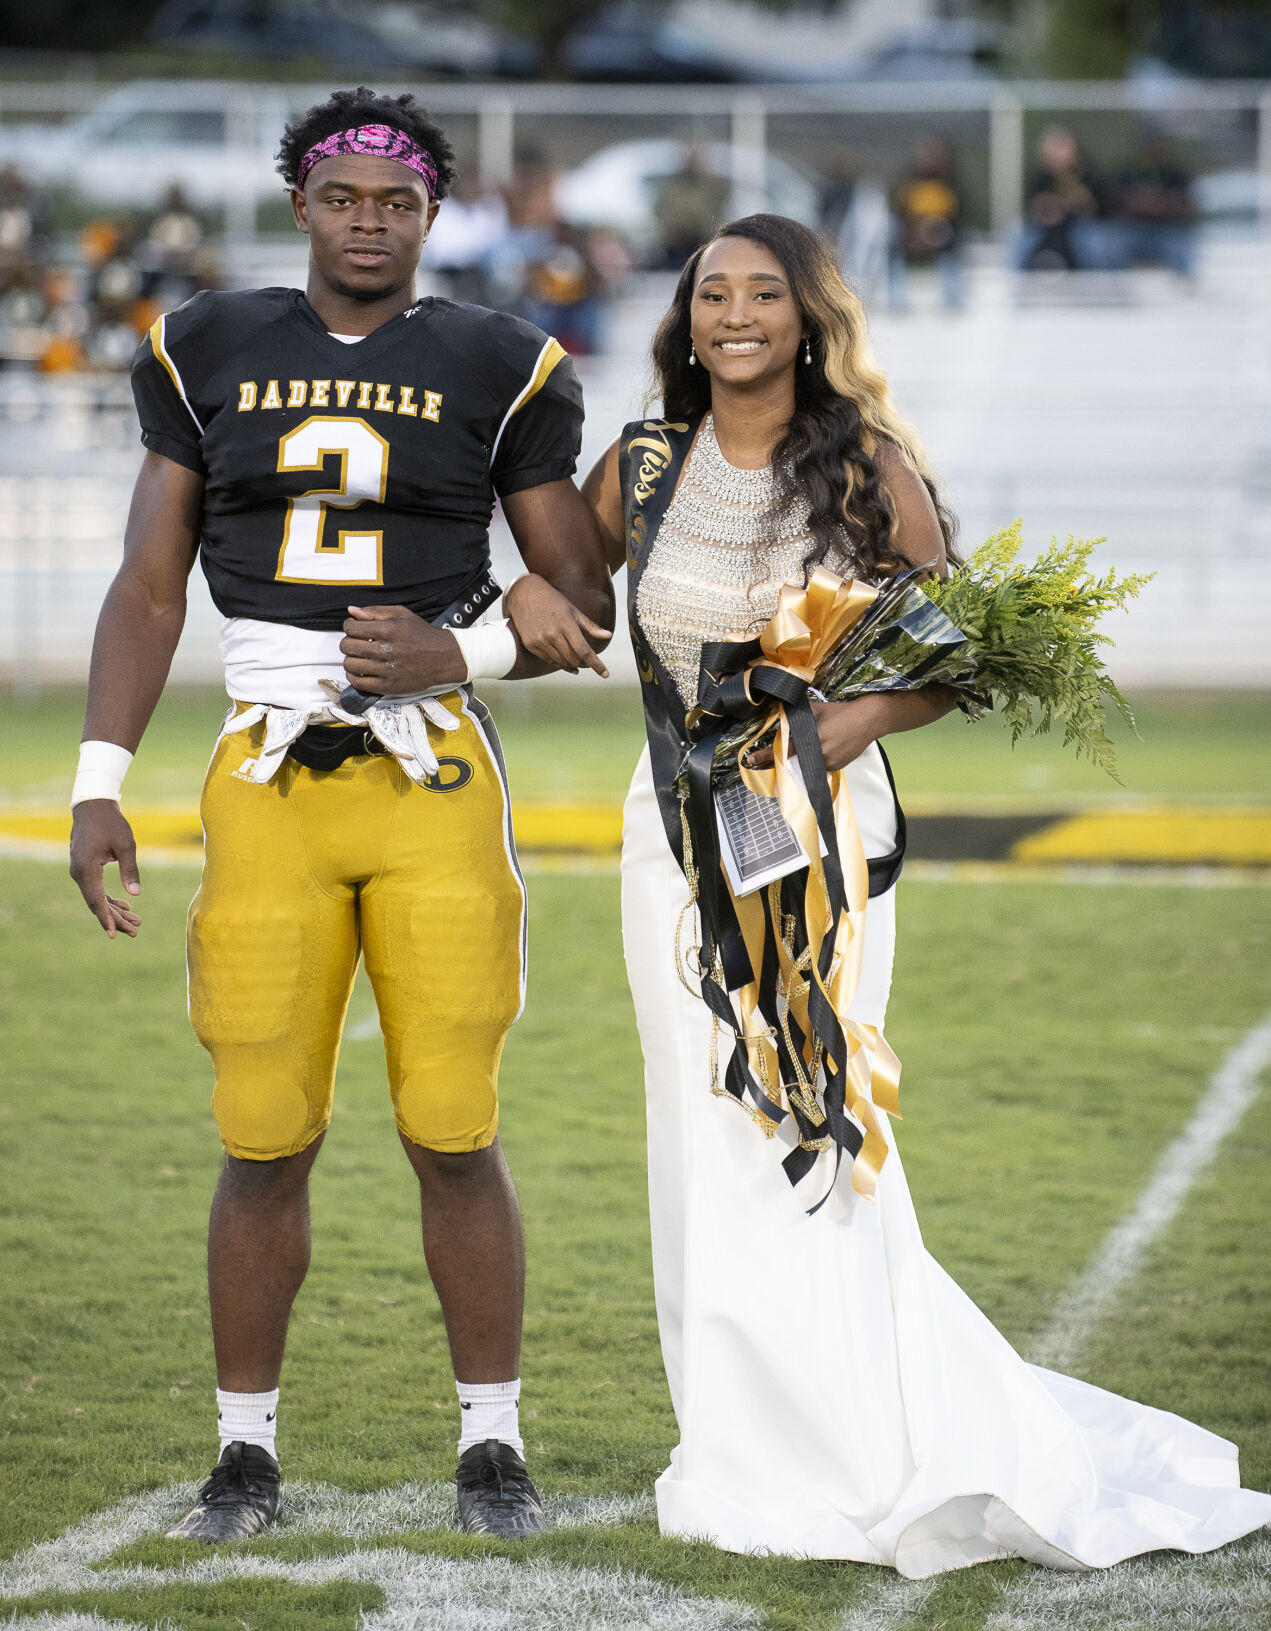 Dadeville Homecoming